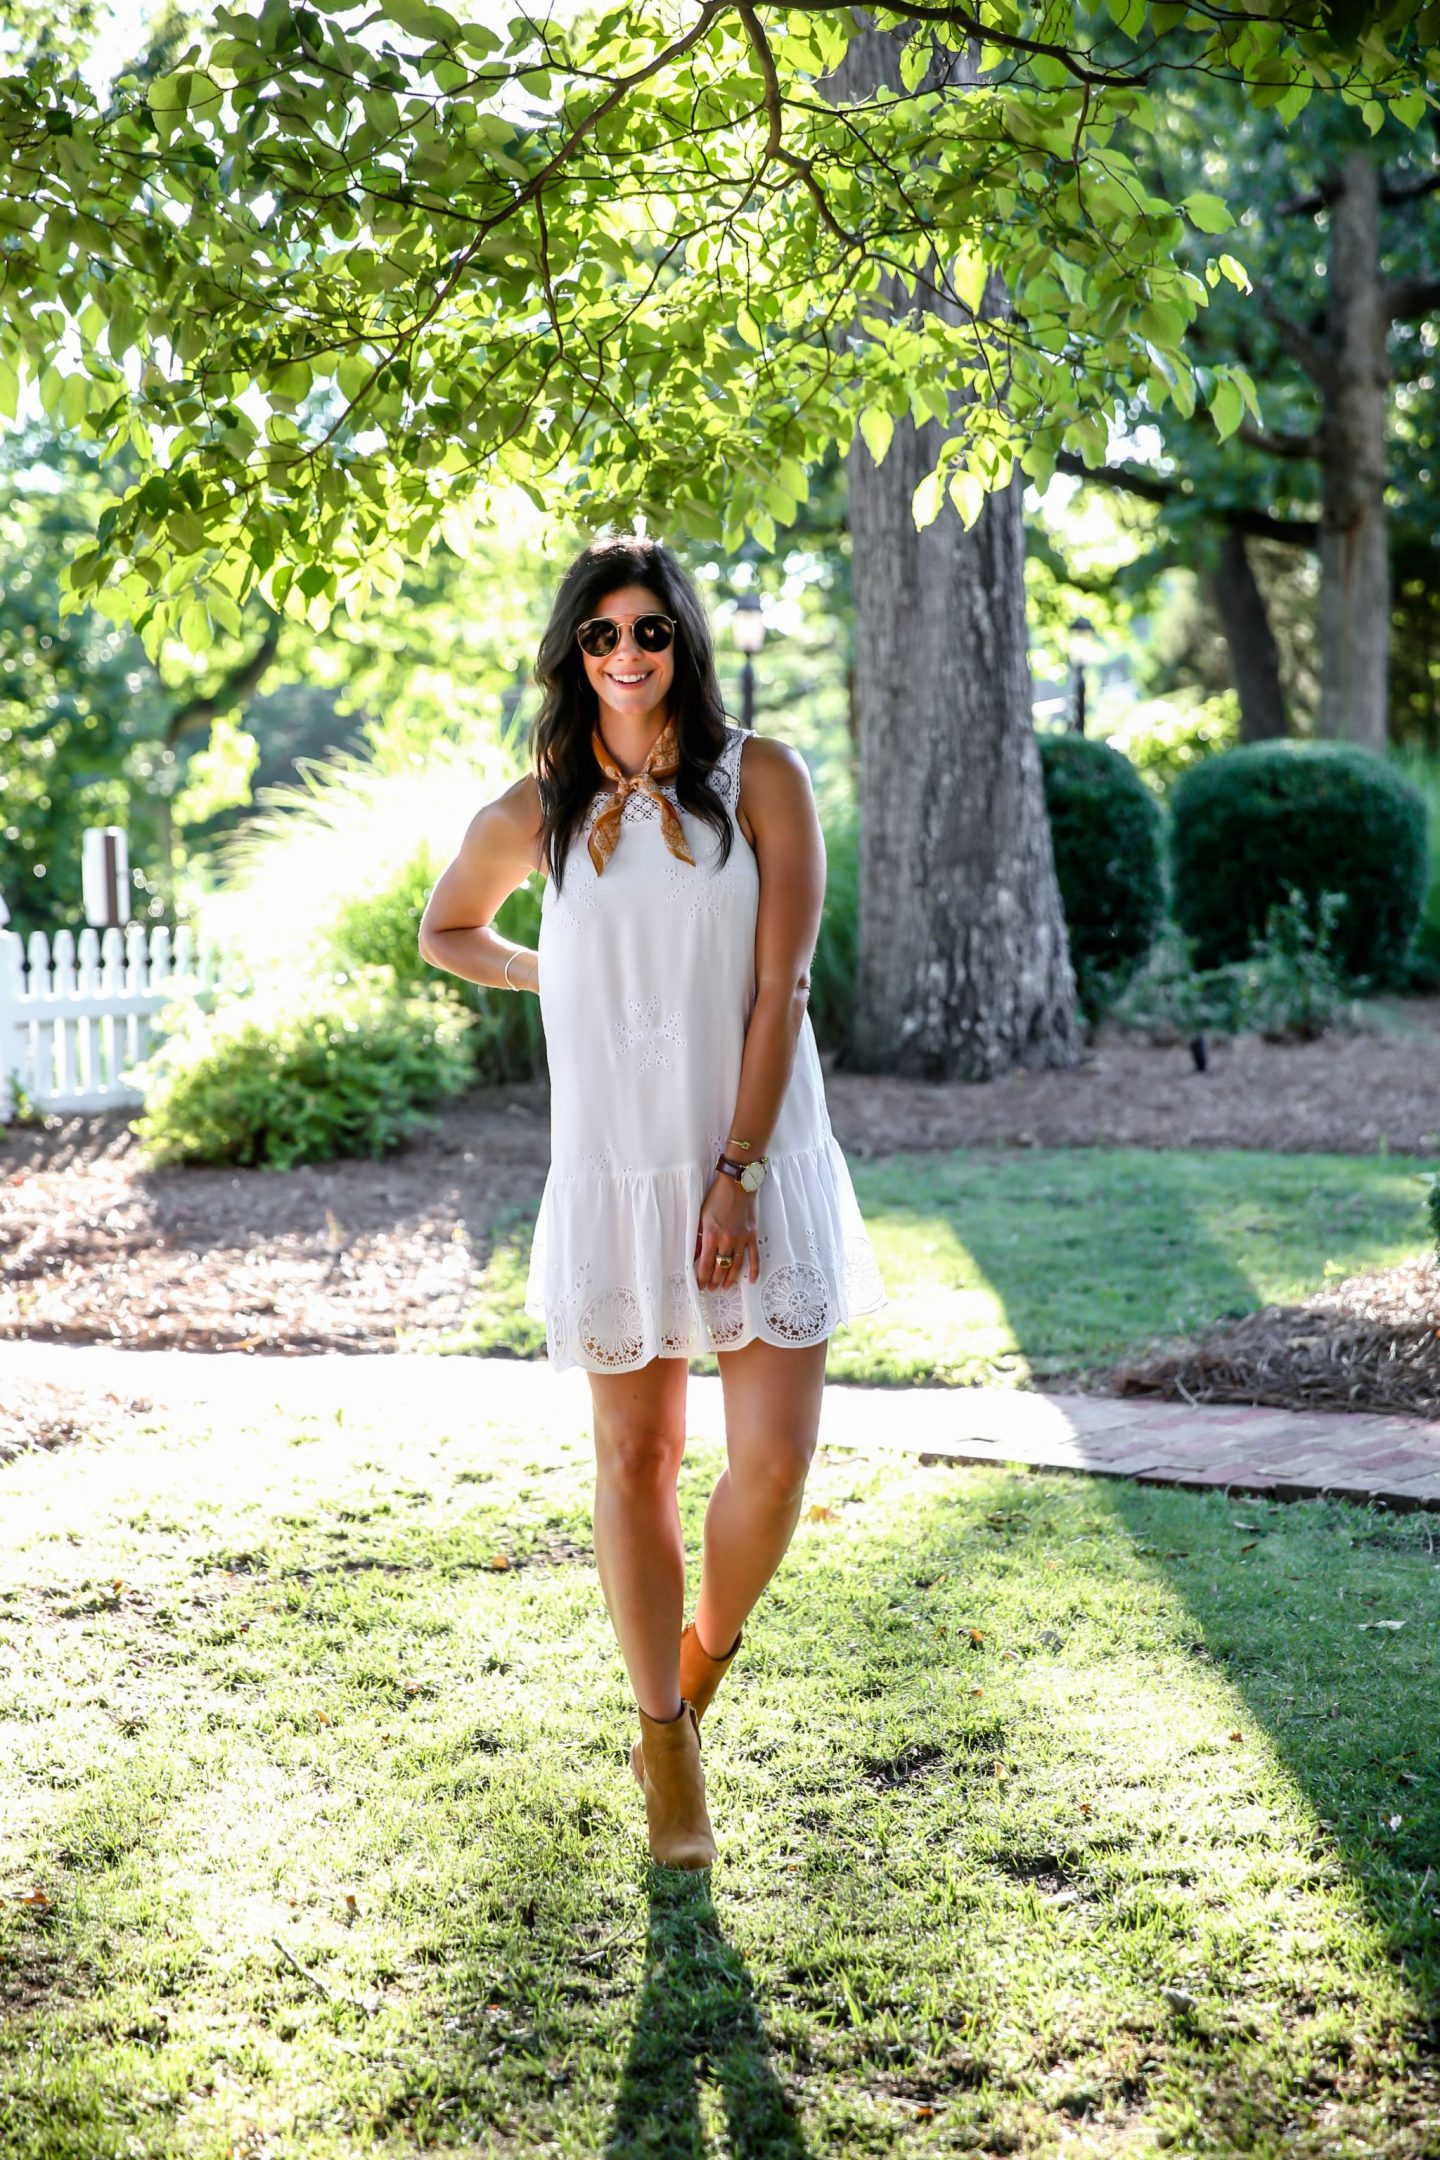 Lauren-schwaiger-little-white-dress-style-blog.jpg